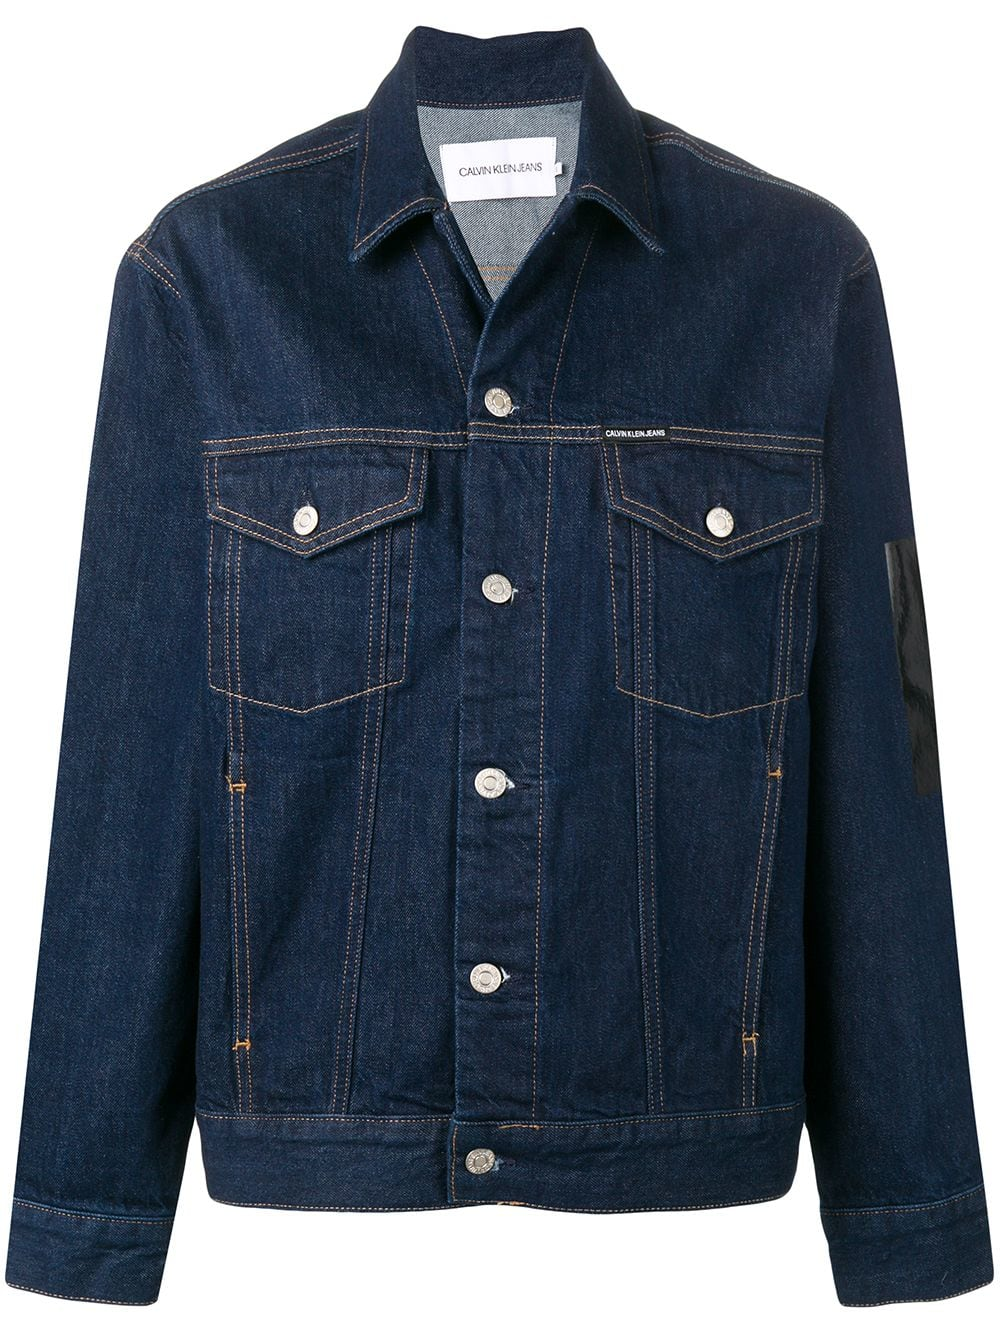 91c7b2f32bc ck-jeans-rear-print-buttoned-jacket-blue-farfetch-com-photo.jpg 1542256919